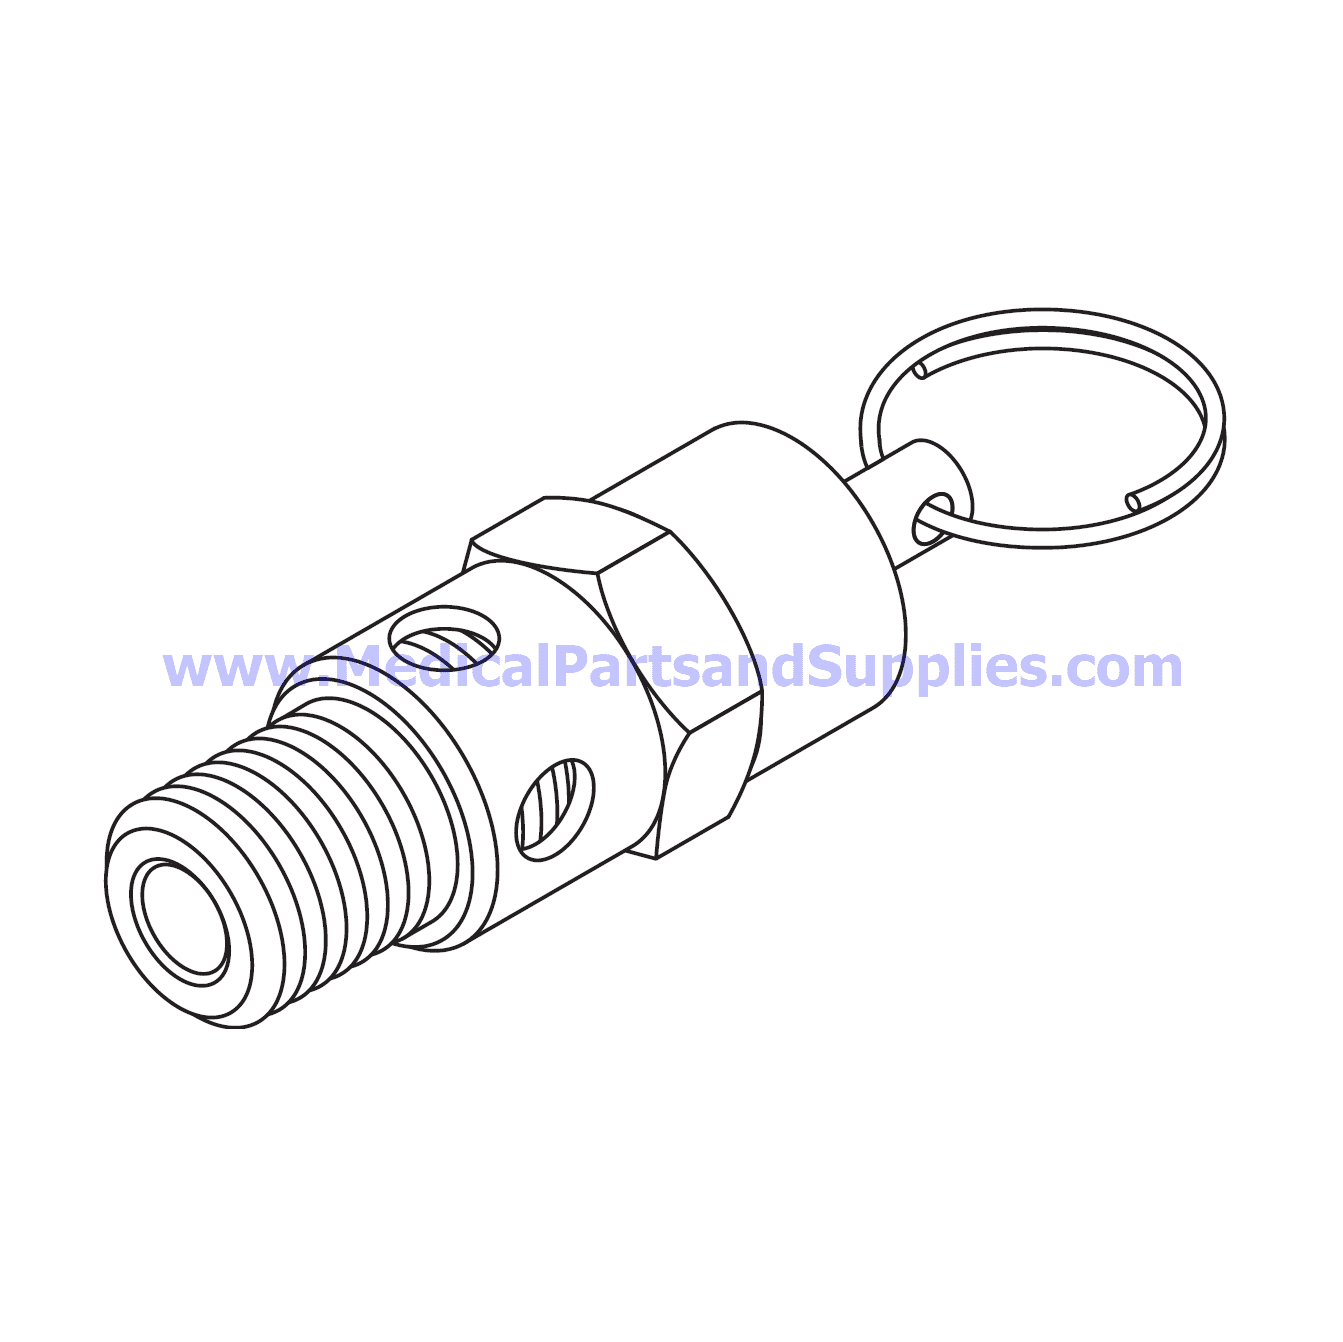 Safety Valve 125 Psi For The Air Techniques Airstar 1